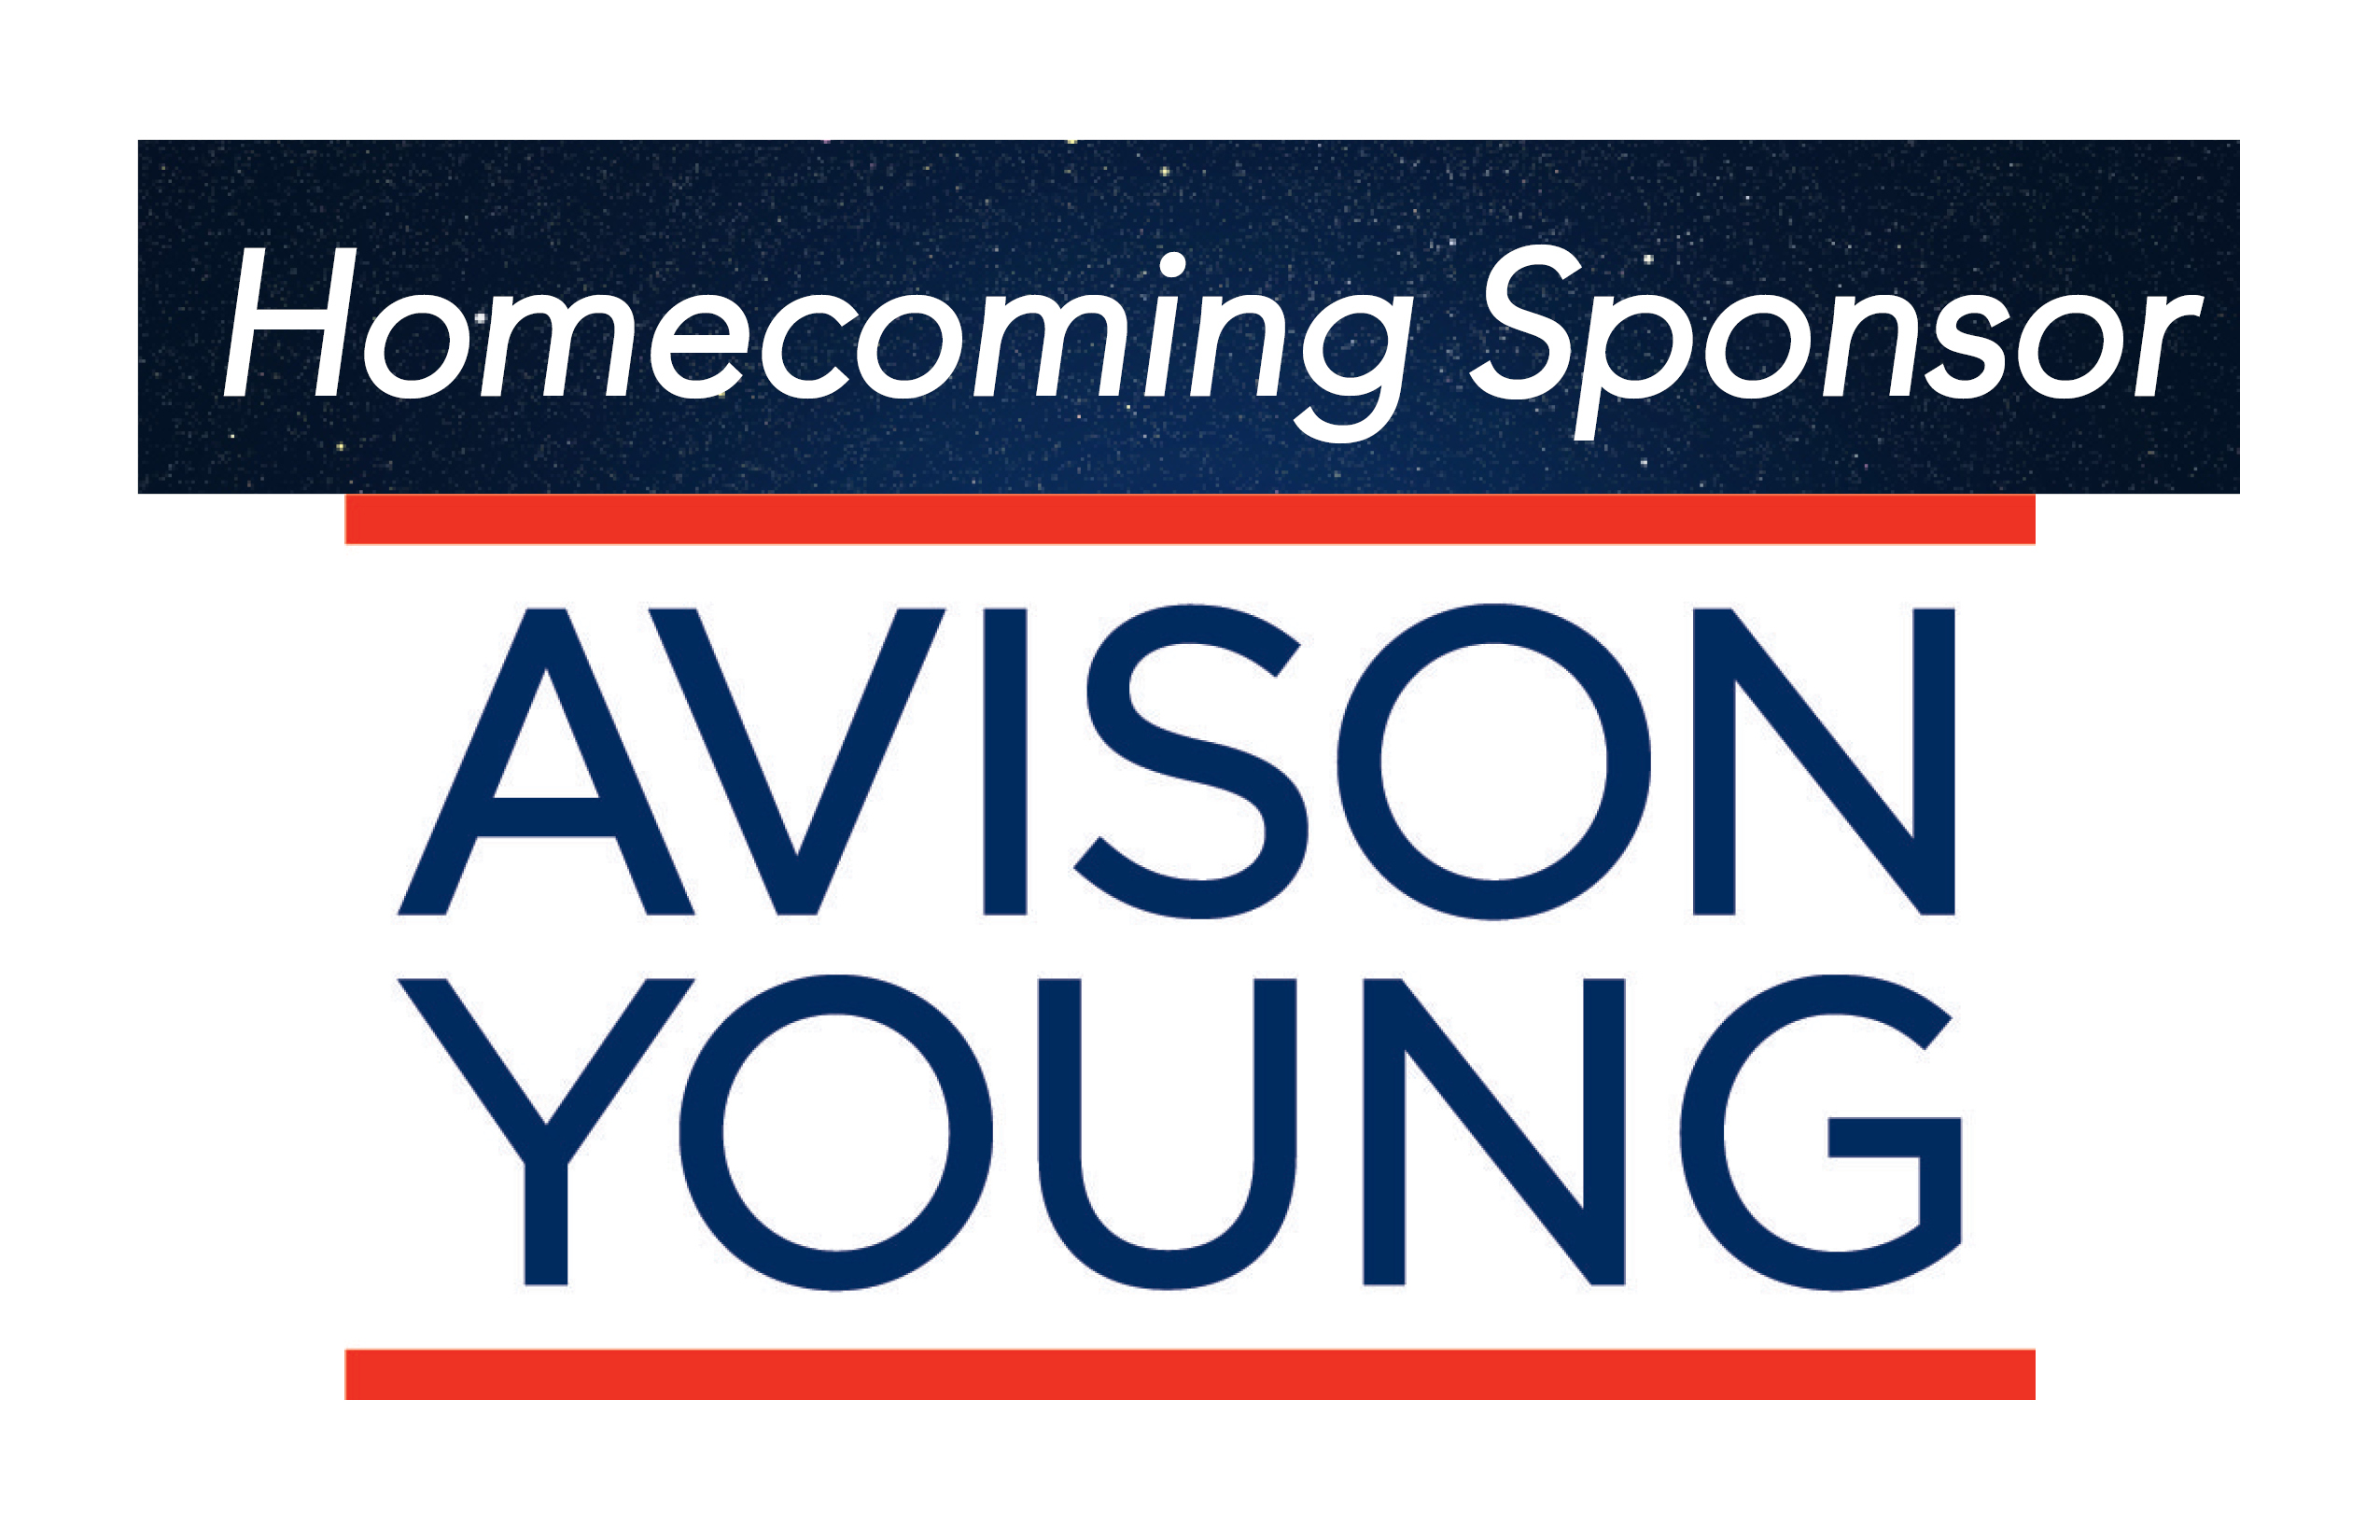 Avison Young, Homecoming Sponsor